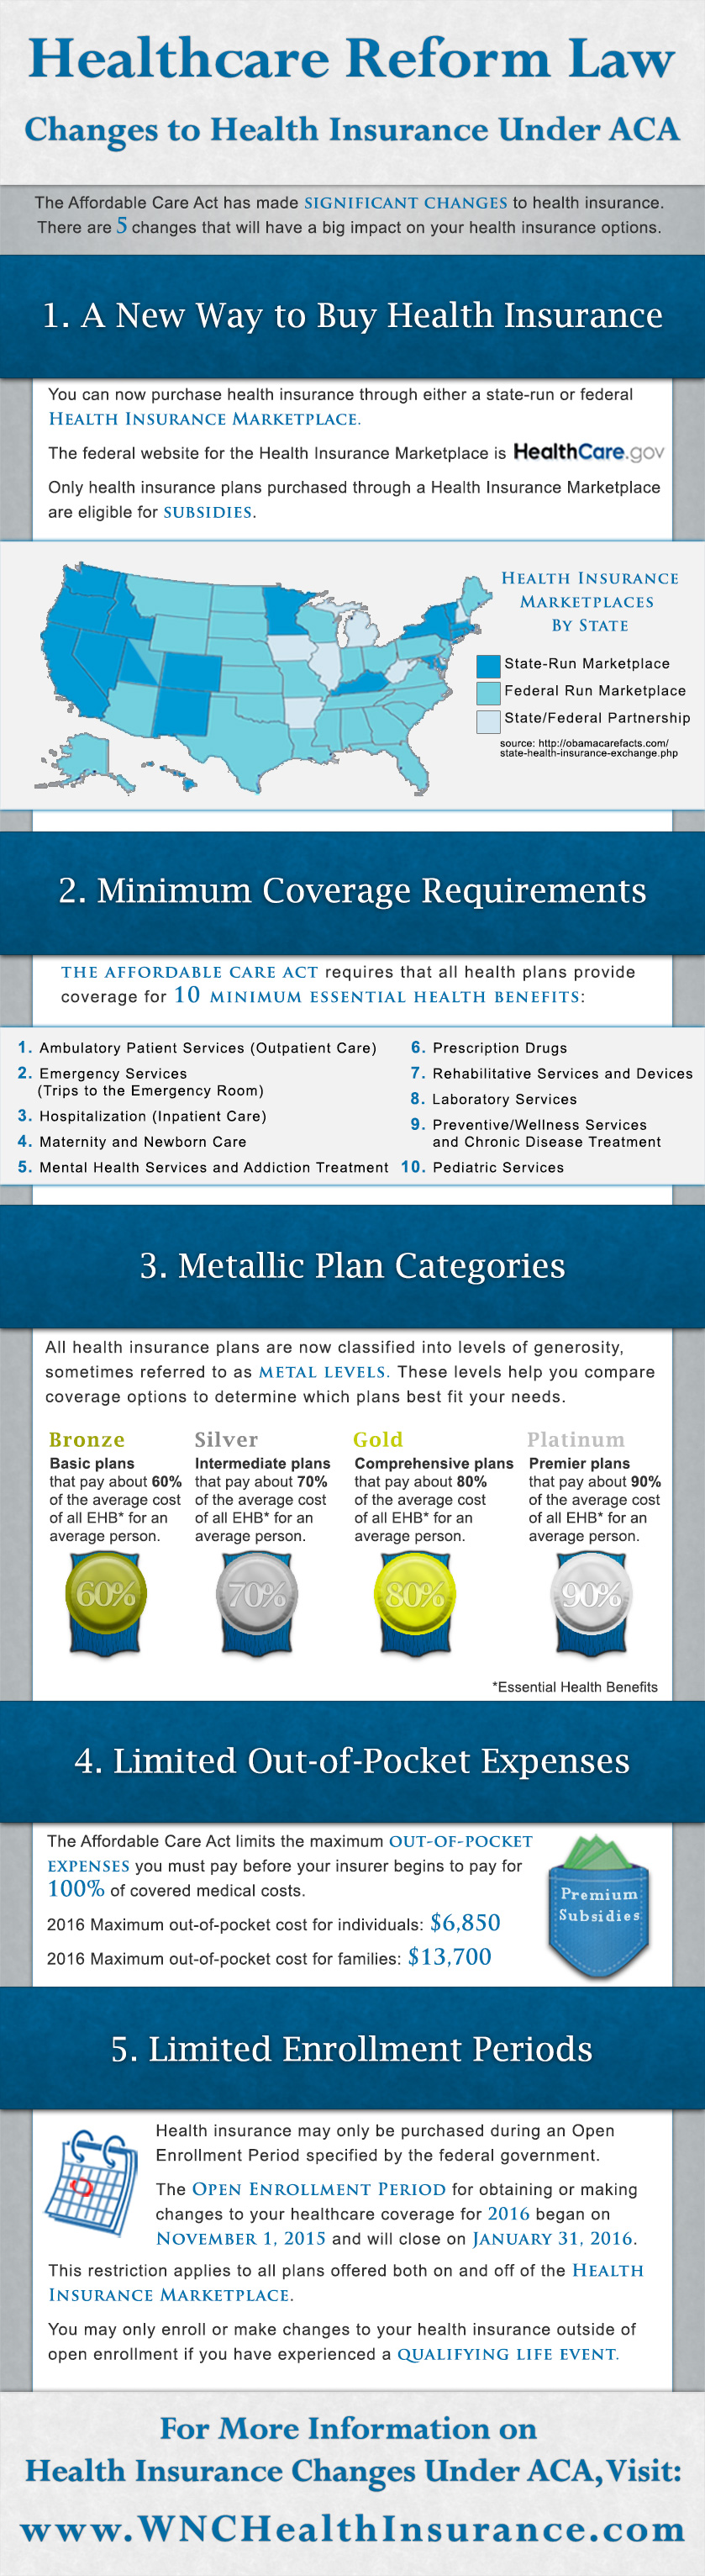 The Healthcare Reform Law, also known as the Affordable ...